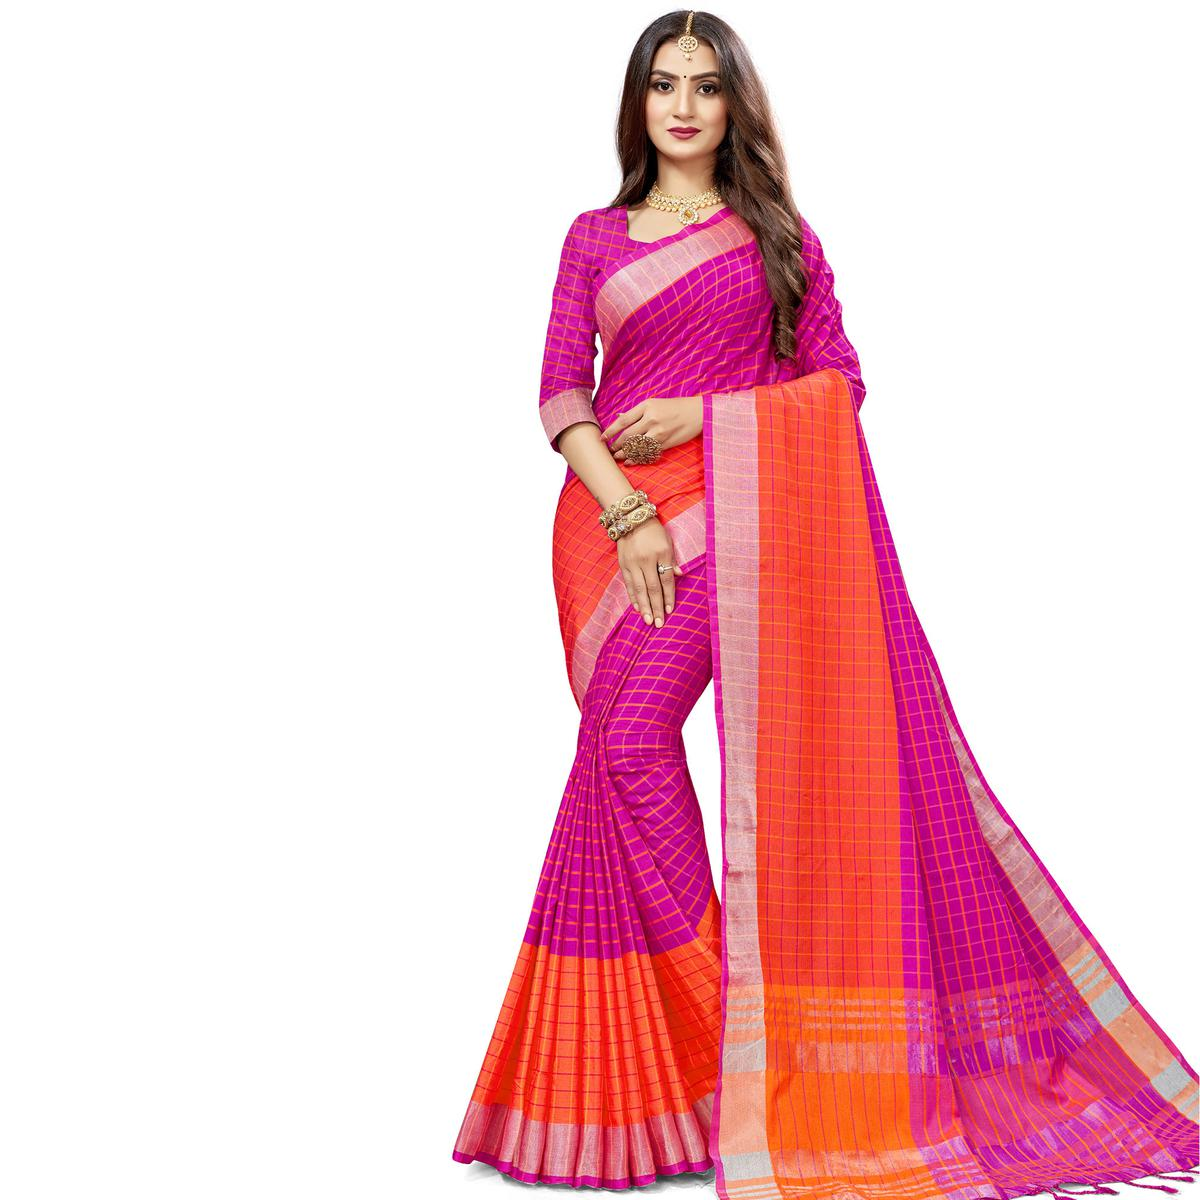 Attractive Pink Colored Fesive Wear Checks Print Cotton Silk Saree With Tassels